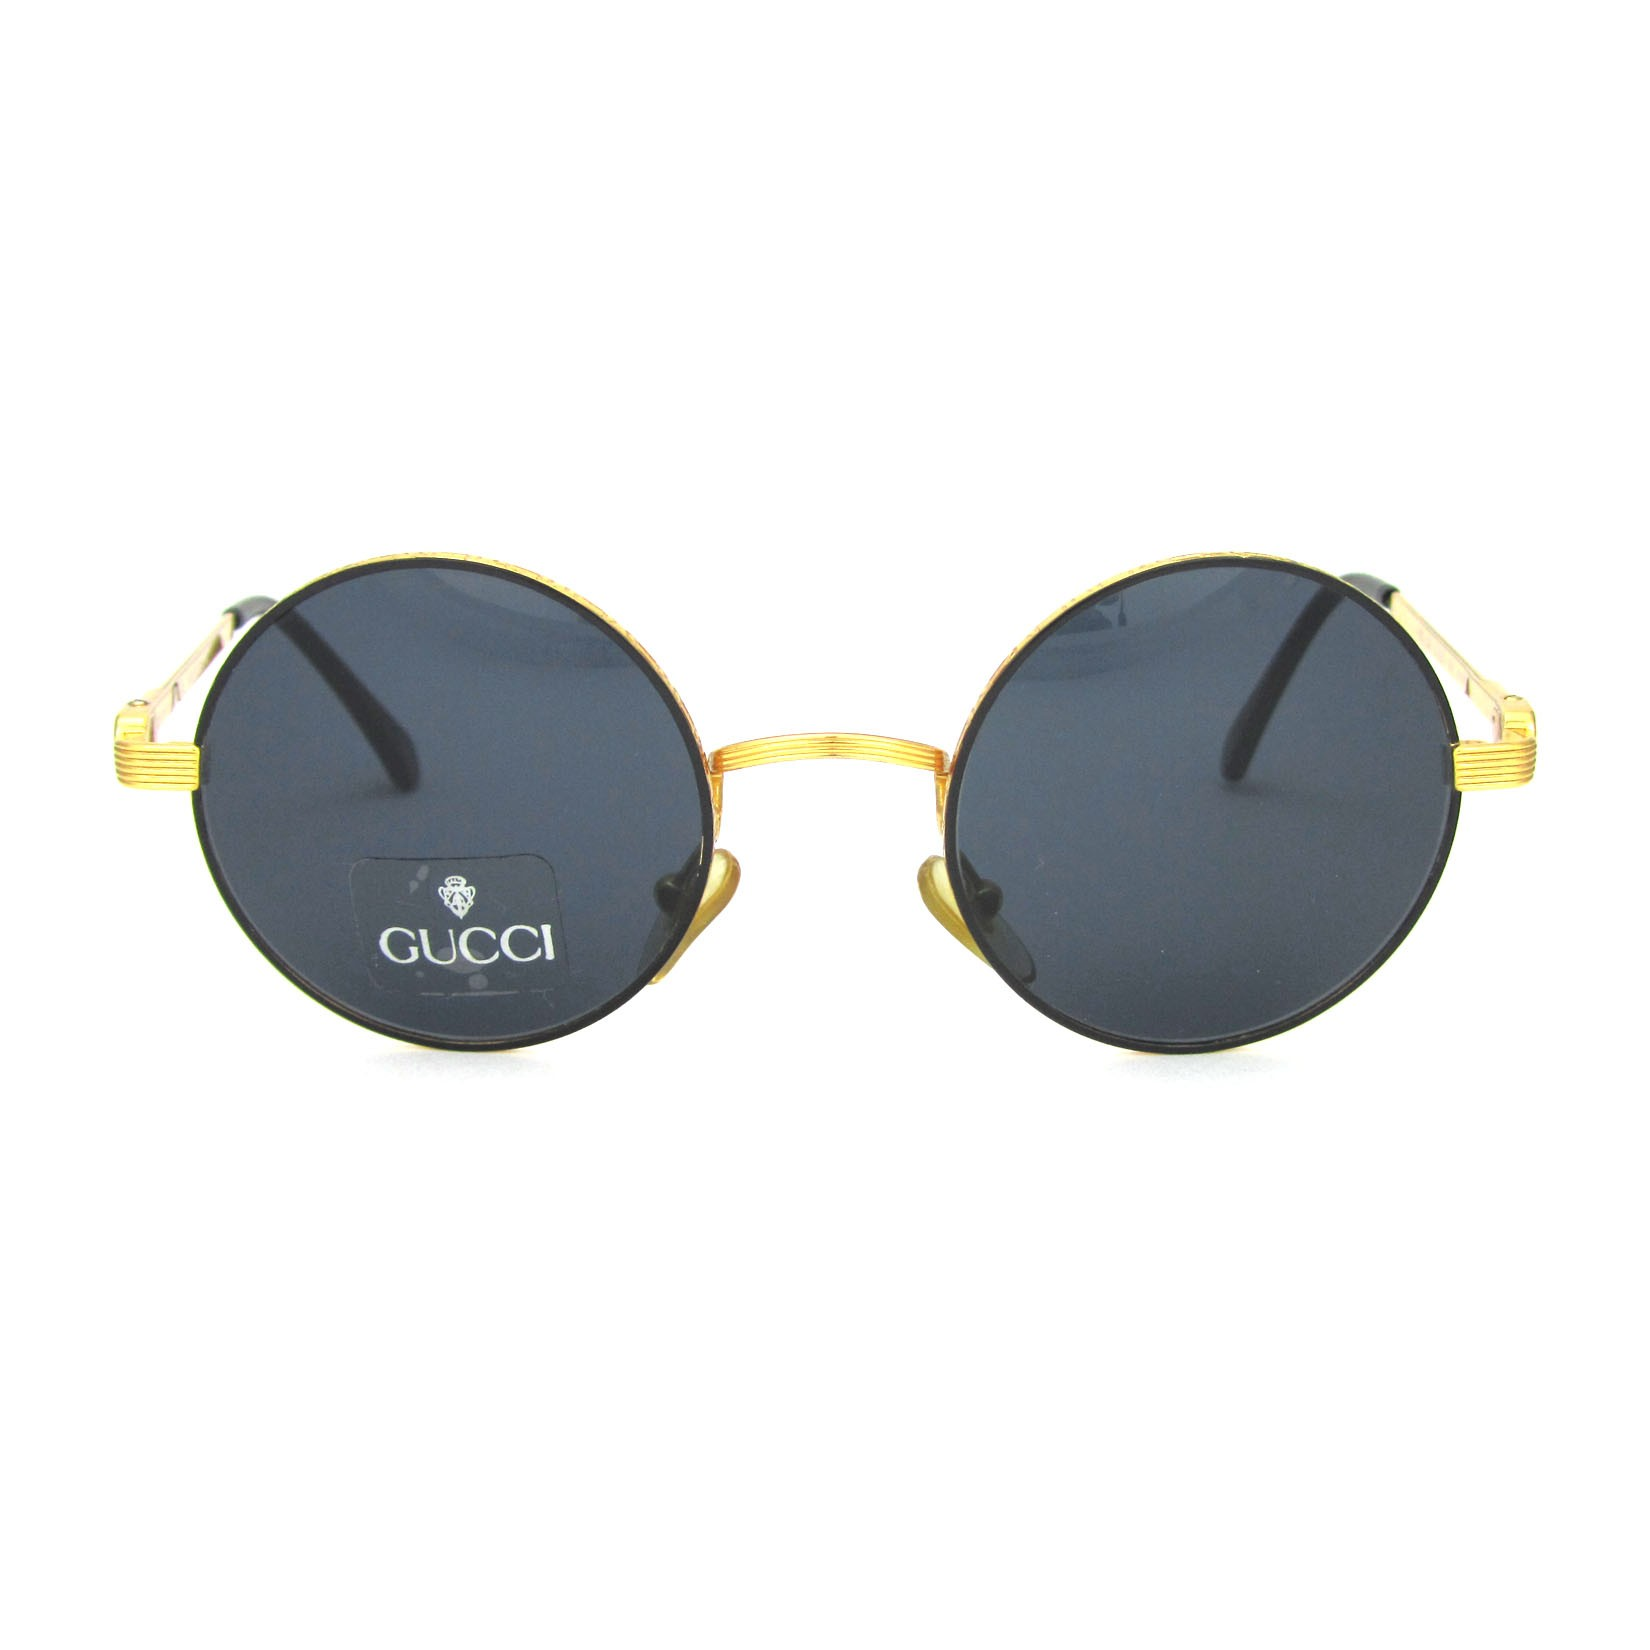 ef1f70a7f7 GUCCI GG 1258 S COL. 031. ROUND HANDMADE SUNGLASSES FROM 90s ...